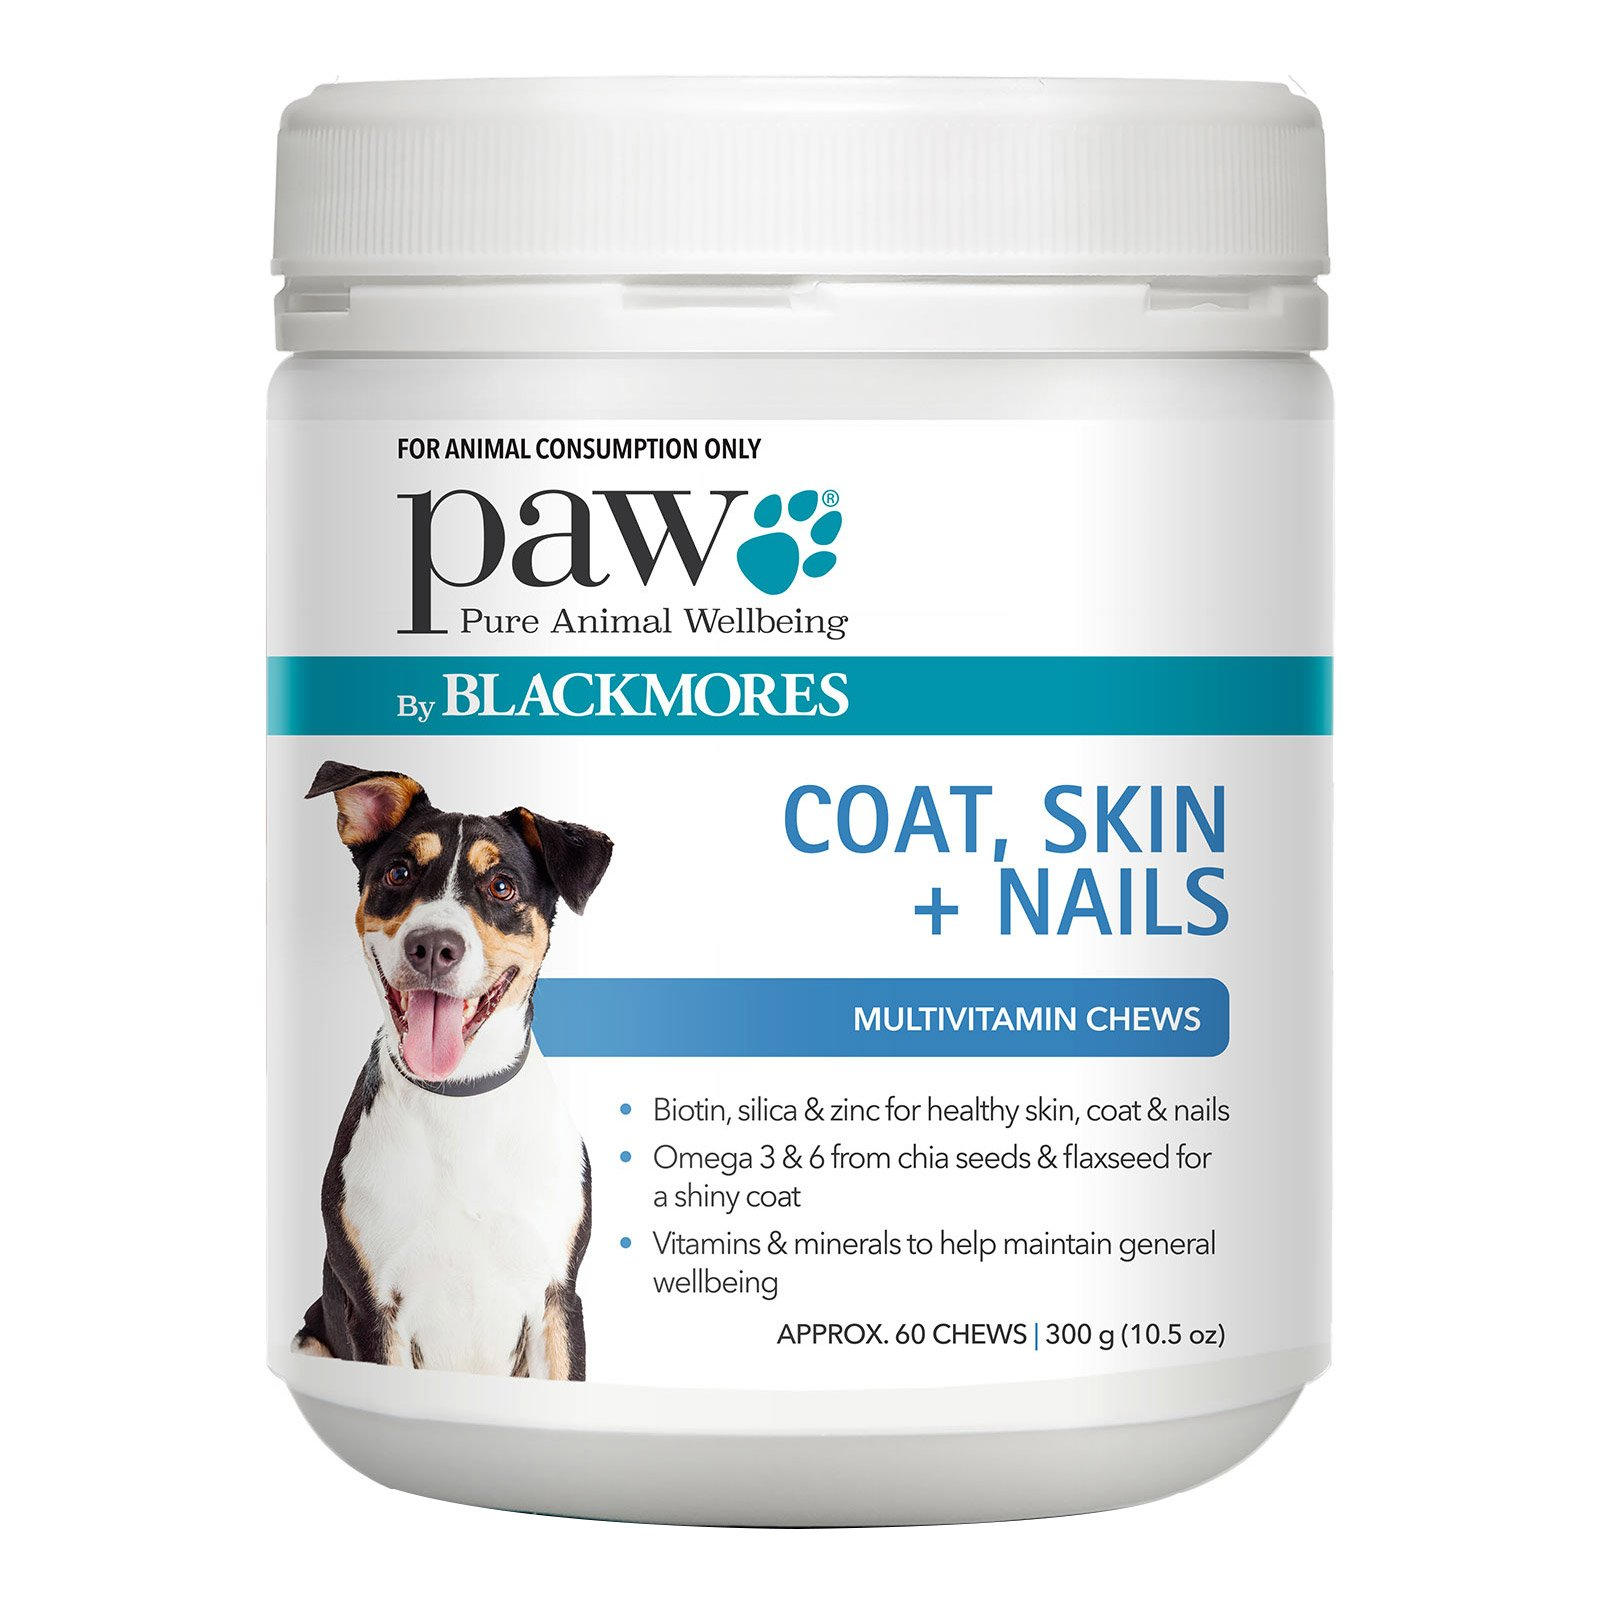 Paw-blackmores-coat-skin-and-nails-chews.jpg